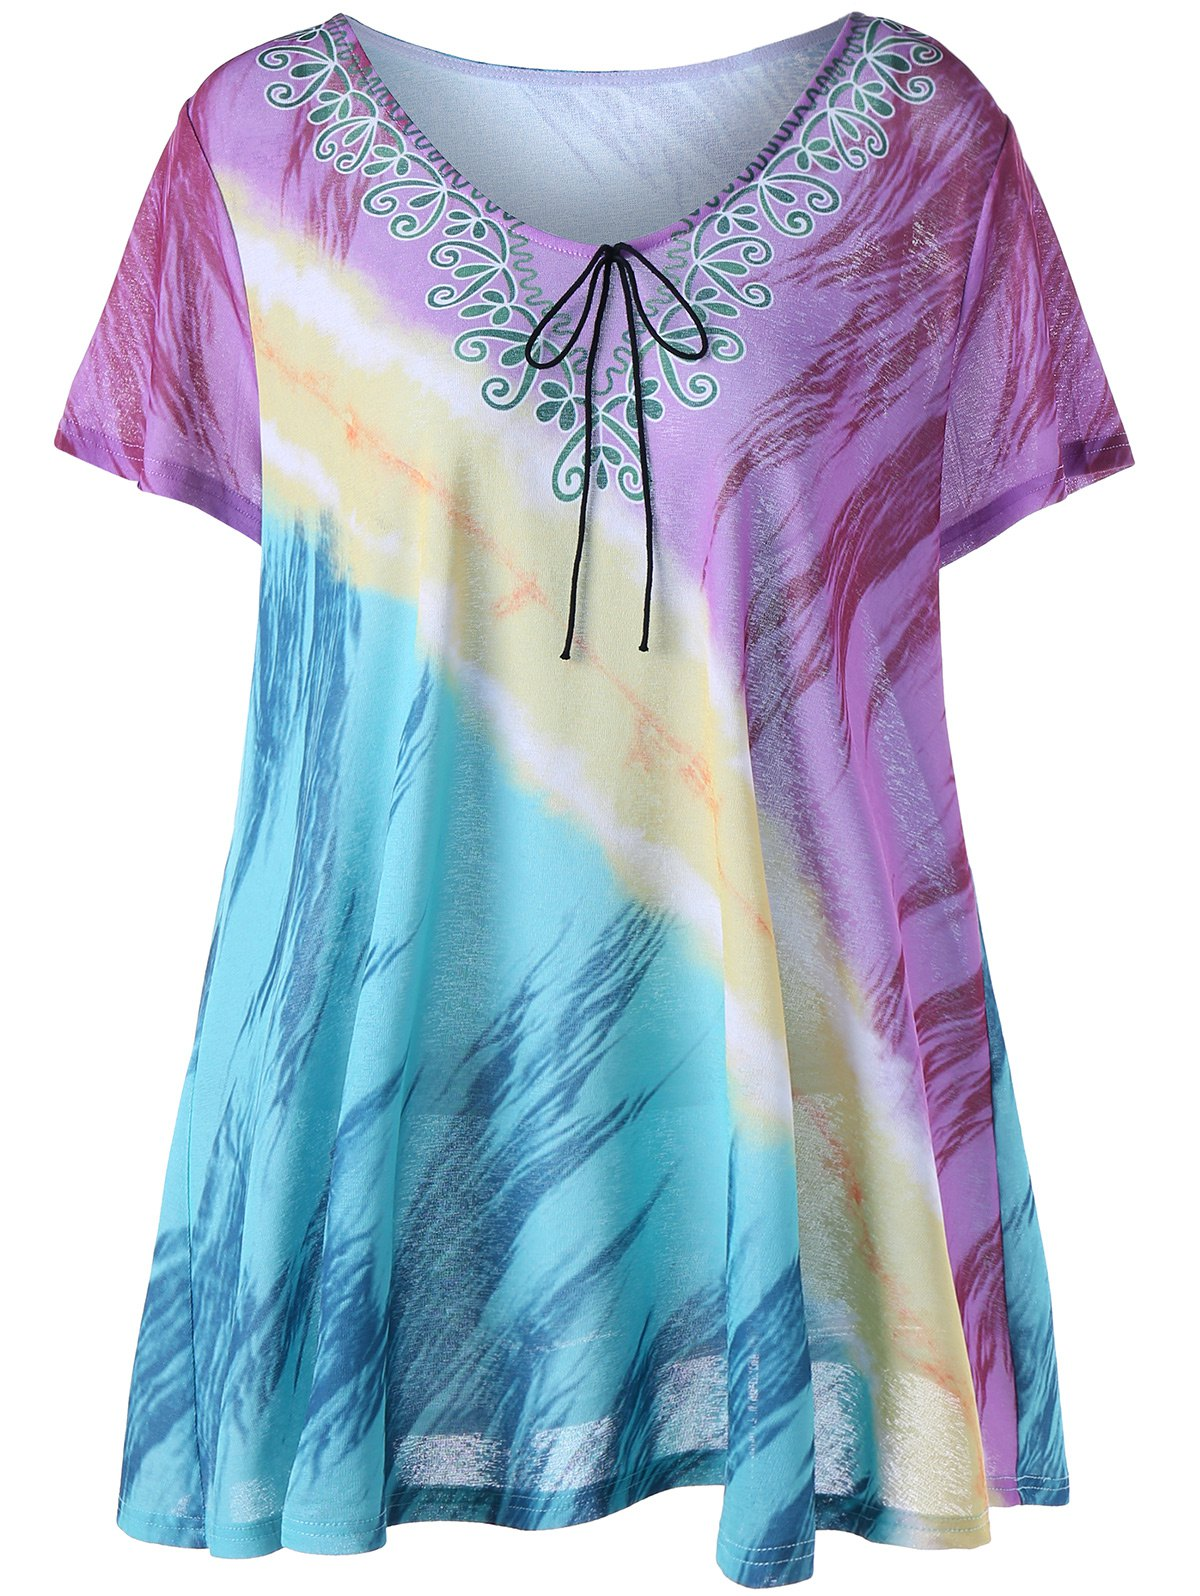 Printed Plus Size Tunic TopWOMEN<br><br>Size: 2XL; Color: COLORMIX; Material: Cotton,Polyester; Shirt Length: Long; Sleeve Length: Short; Collar: Scoop Neck; Style: Fashion; Season: Summer; Pattern Type: Print; Weight: 0.2300kg; Package Contents: 1 x T-Shirt;